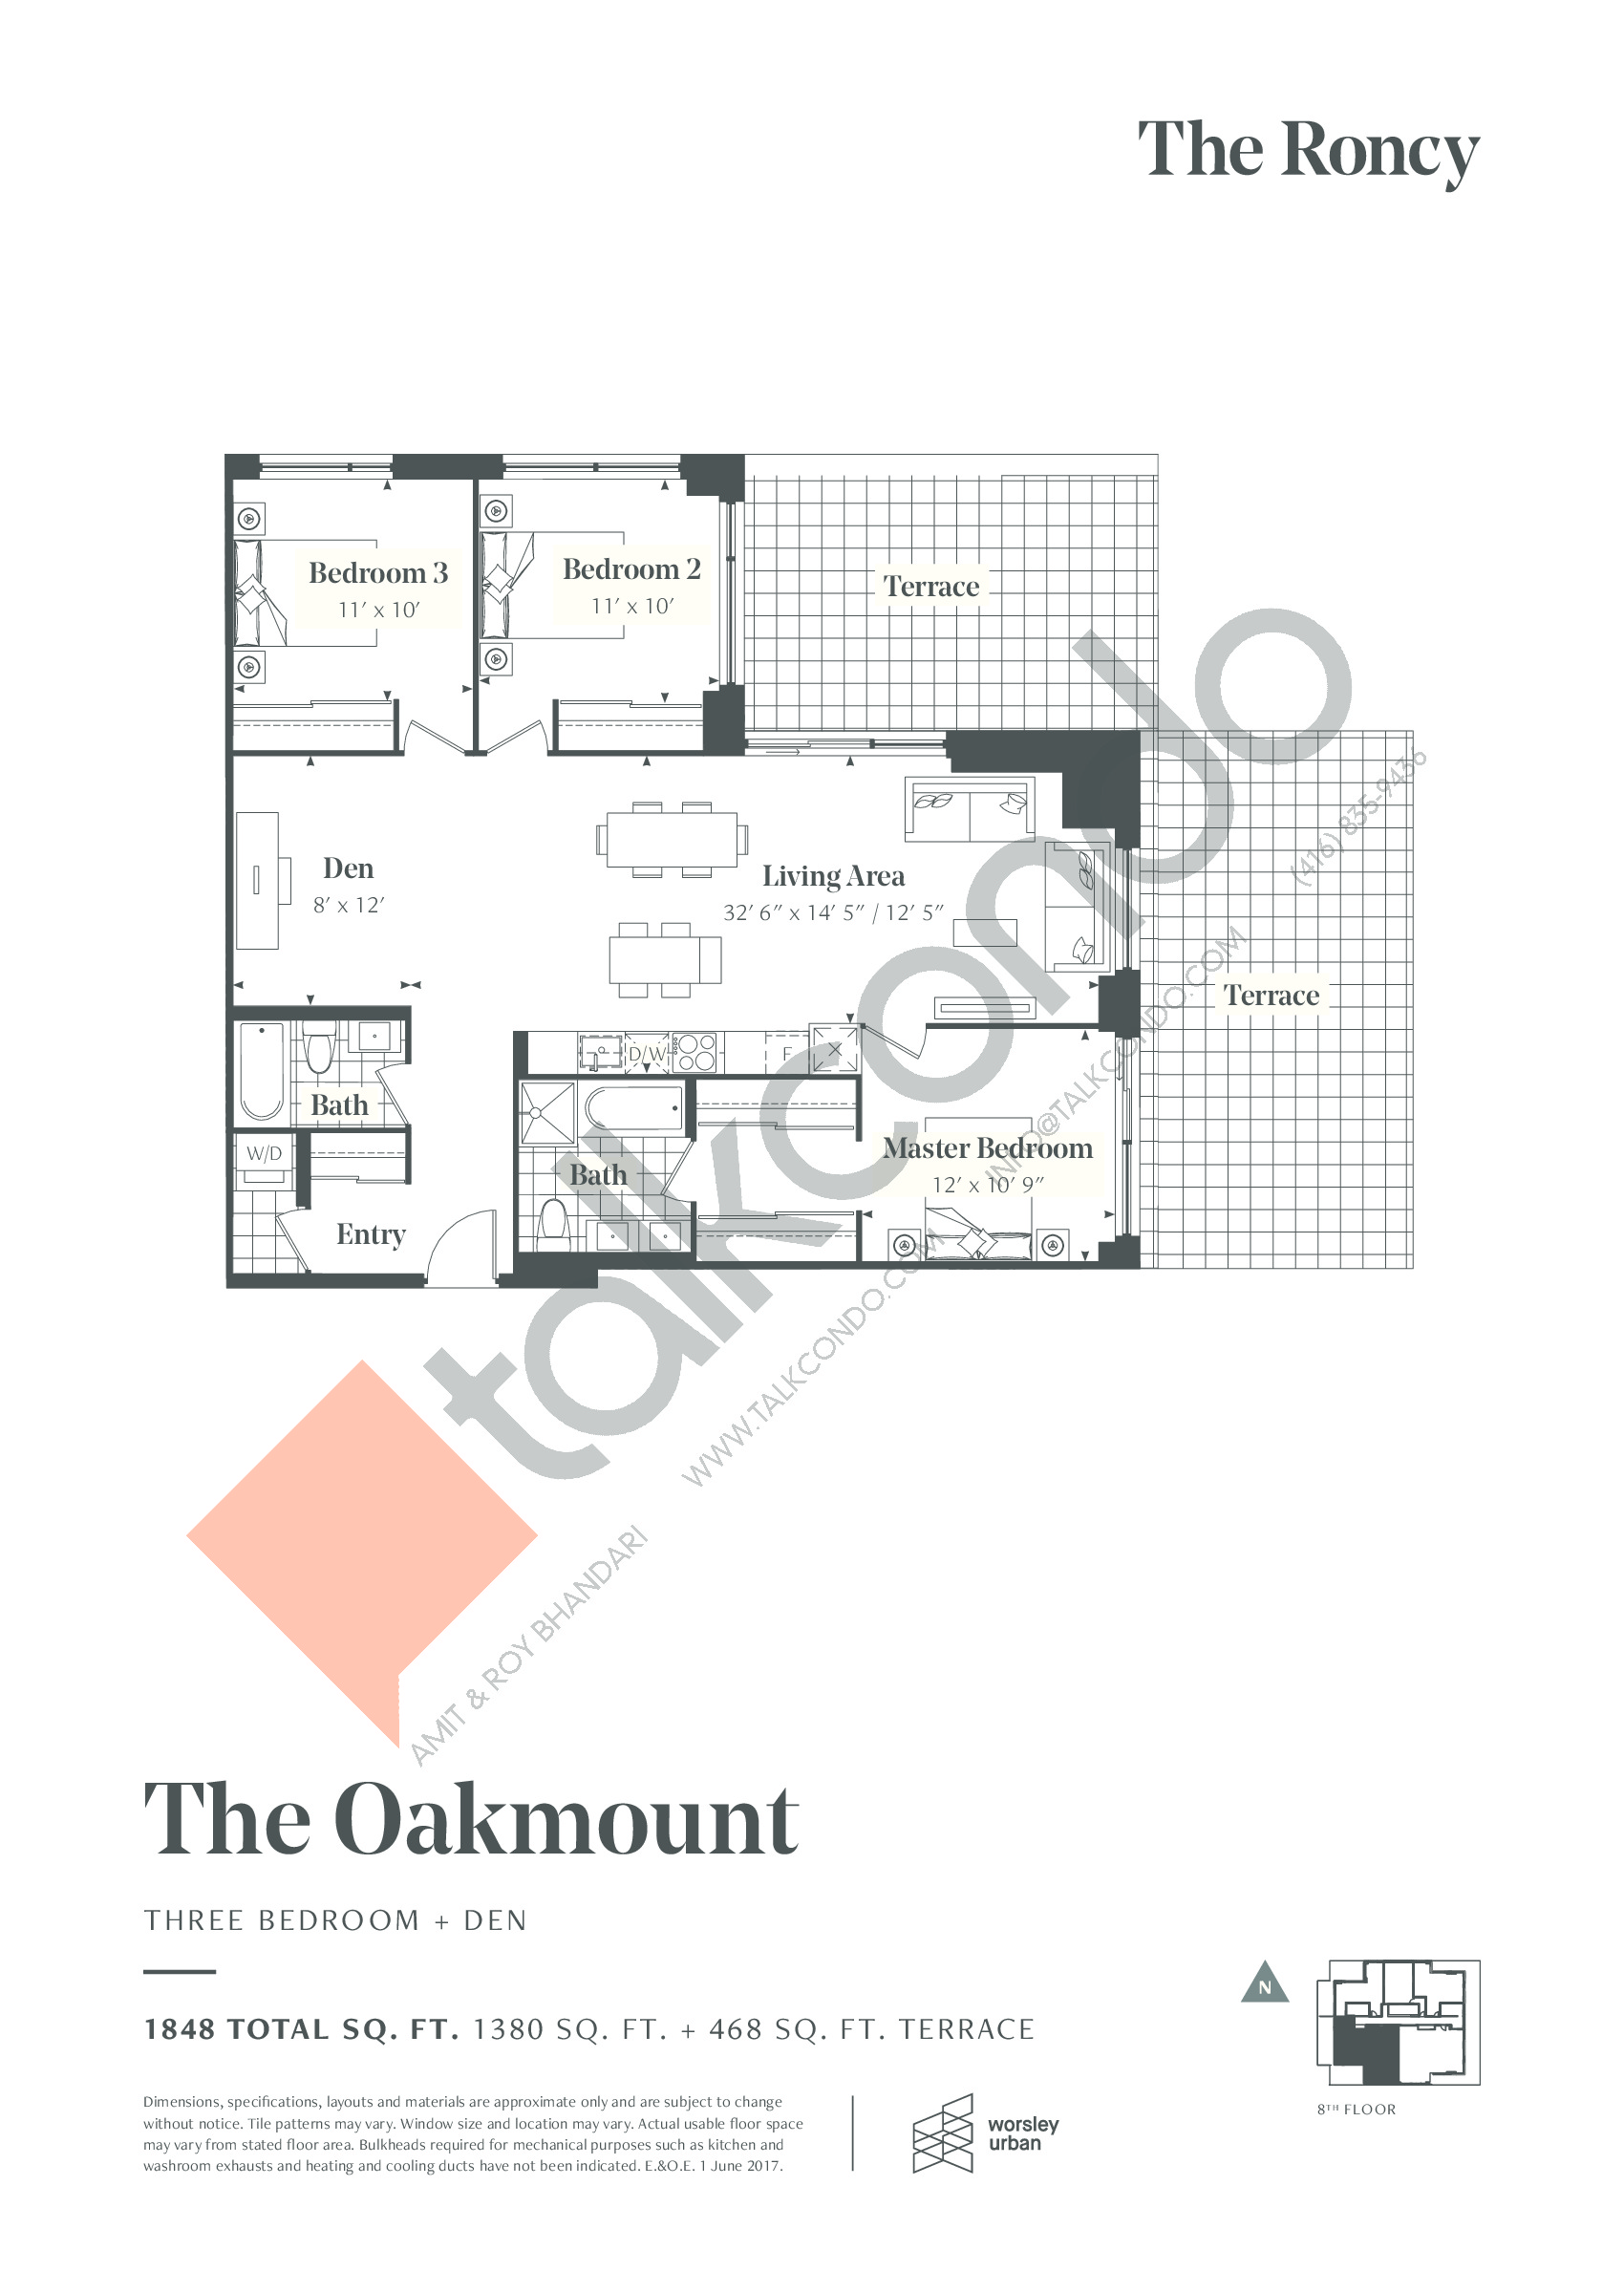 The Oakmount Floor Plan at The Roncy Condos - 1380 sq.ft